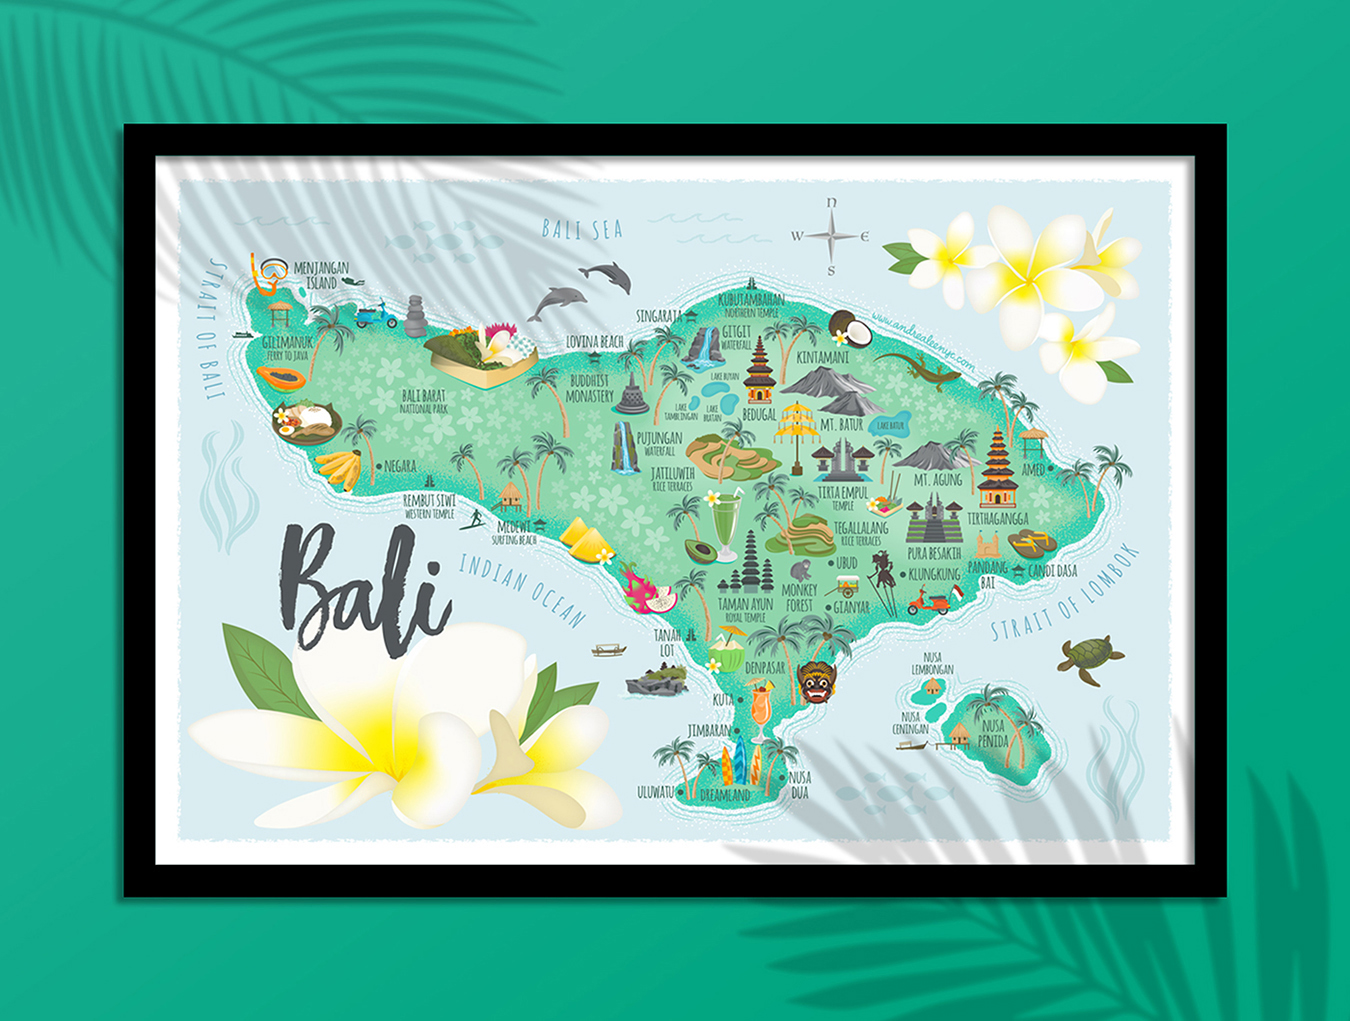 Bali illustrated map